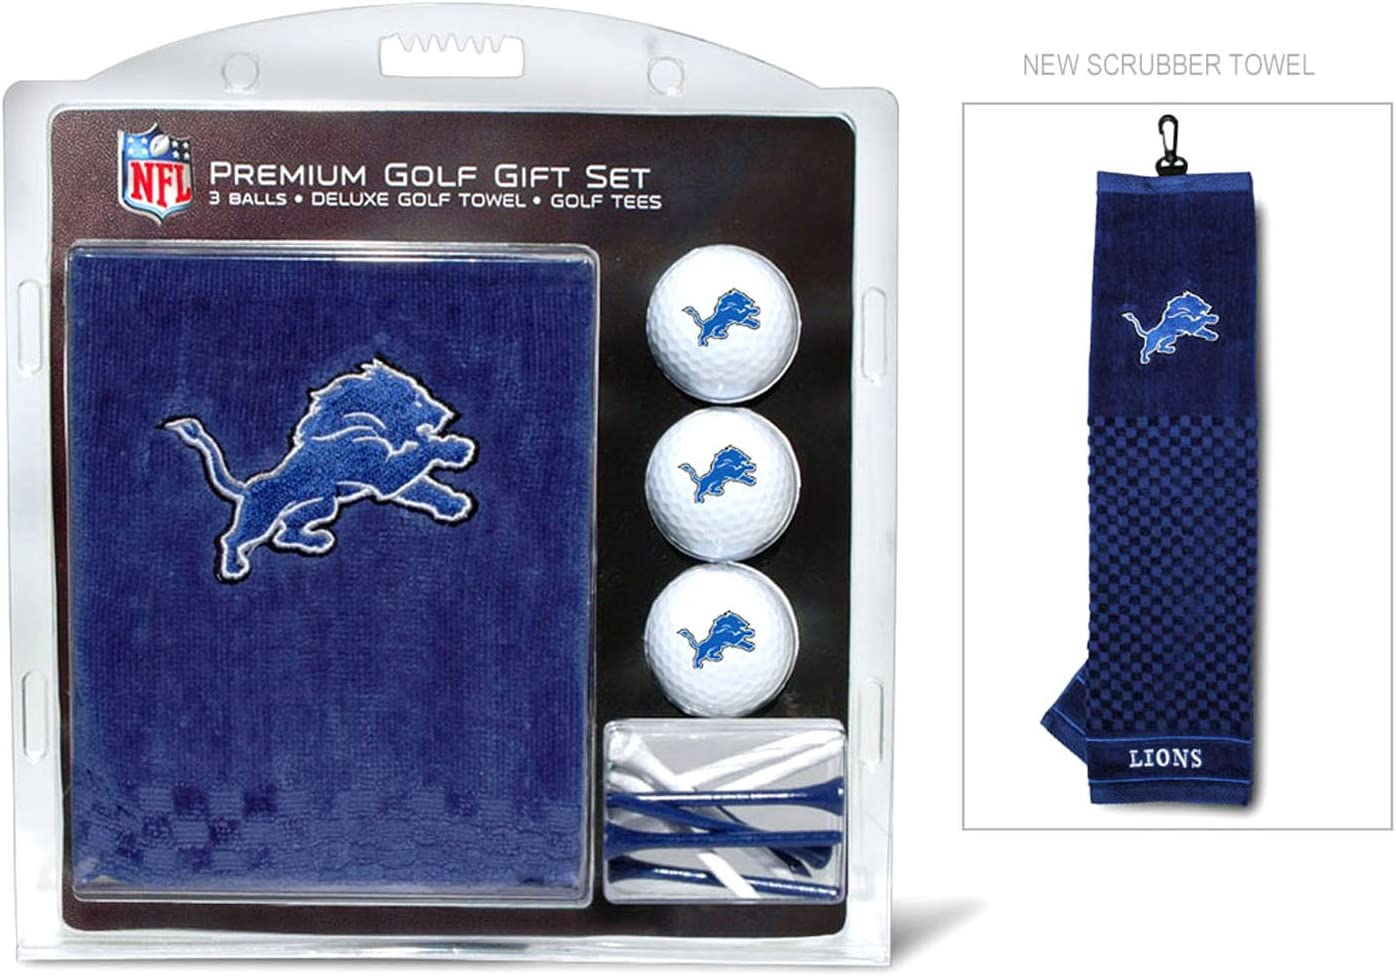 """Team Golf NFL Detroit Lions Gift Set Embroidered Golf Towel, 3 Golf Balls, and 14 Golf Tees 2-3/4"""" Regulation, Tri-Fold Towel 16"""" x 22"""" & 100% Cotton : Golf Accessories : Sports & Outdoors"""